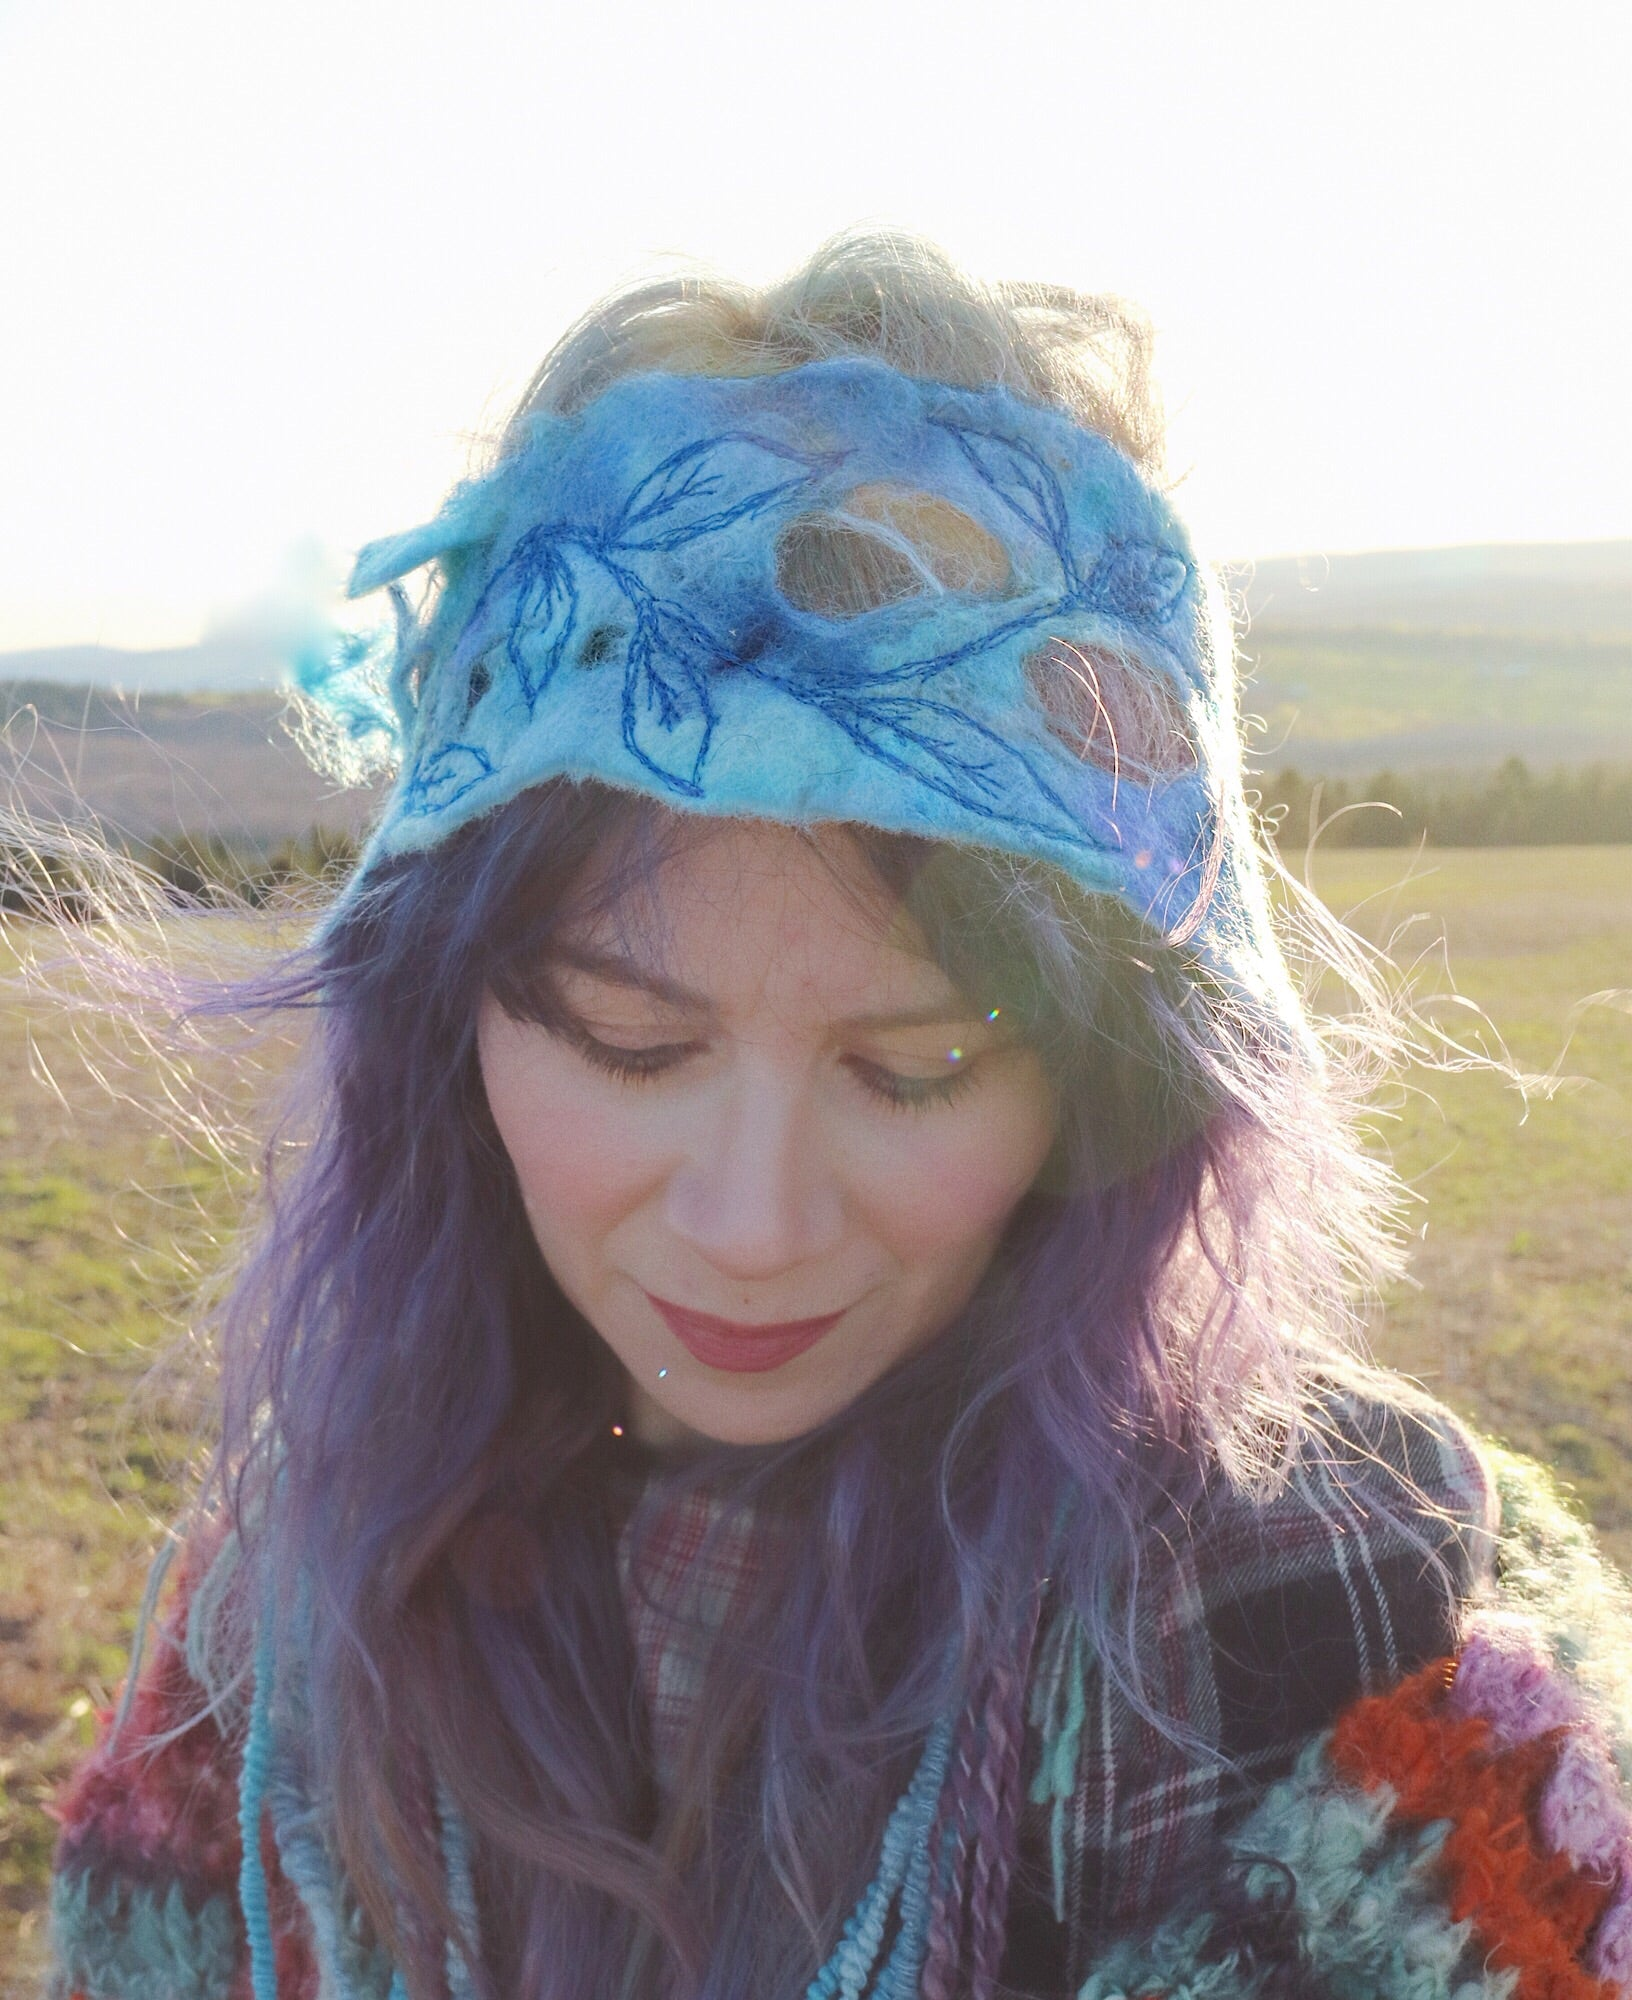 Blue felted headband with embroidery